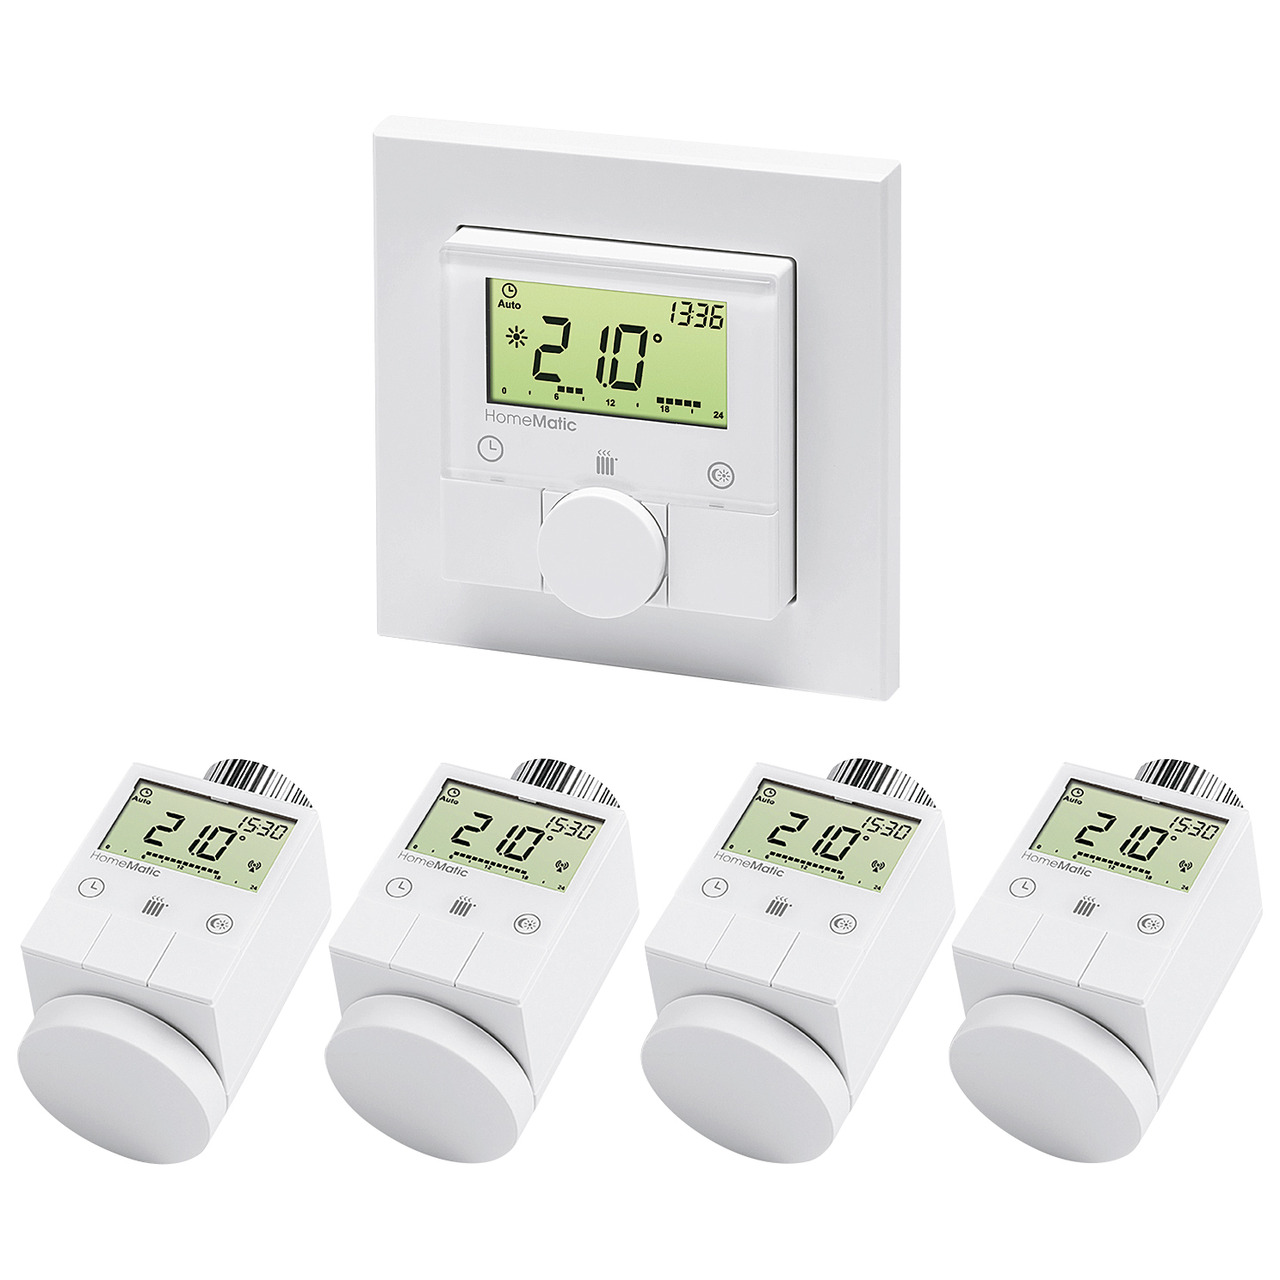 Homematic Spar-Set 4x Funk-Heizkörperthermostat und 1x Funk-Wandthermostat